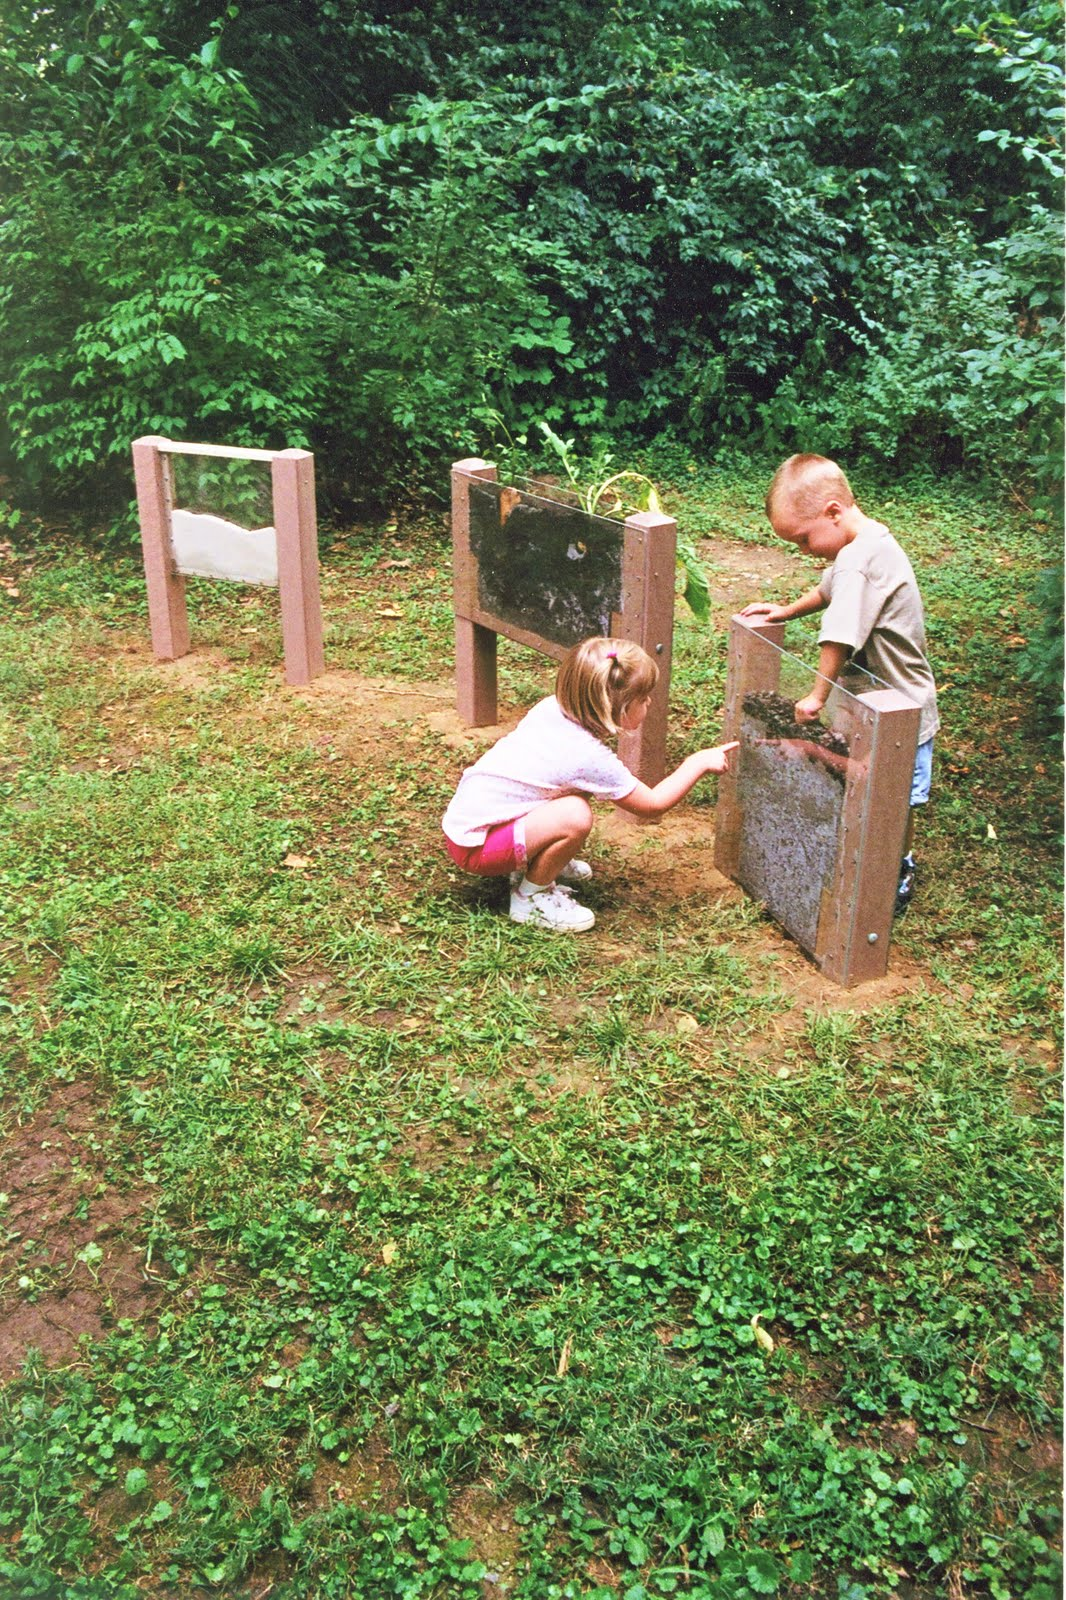 Preschool playgrounds it 39 s simply a classroom natural playscapes - Natural playgrounds for children ...